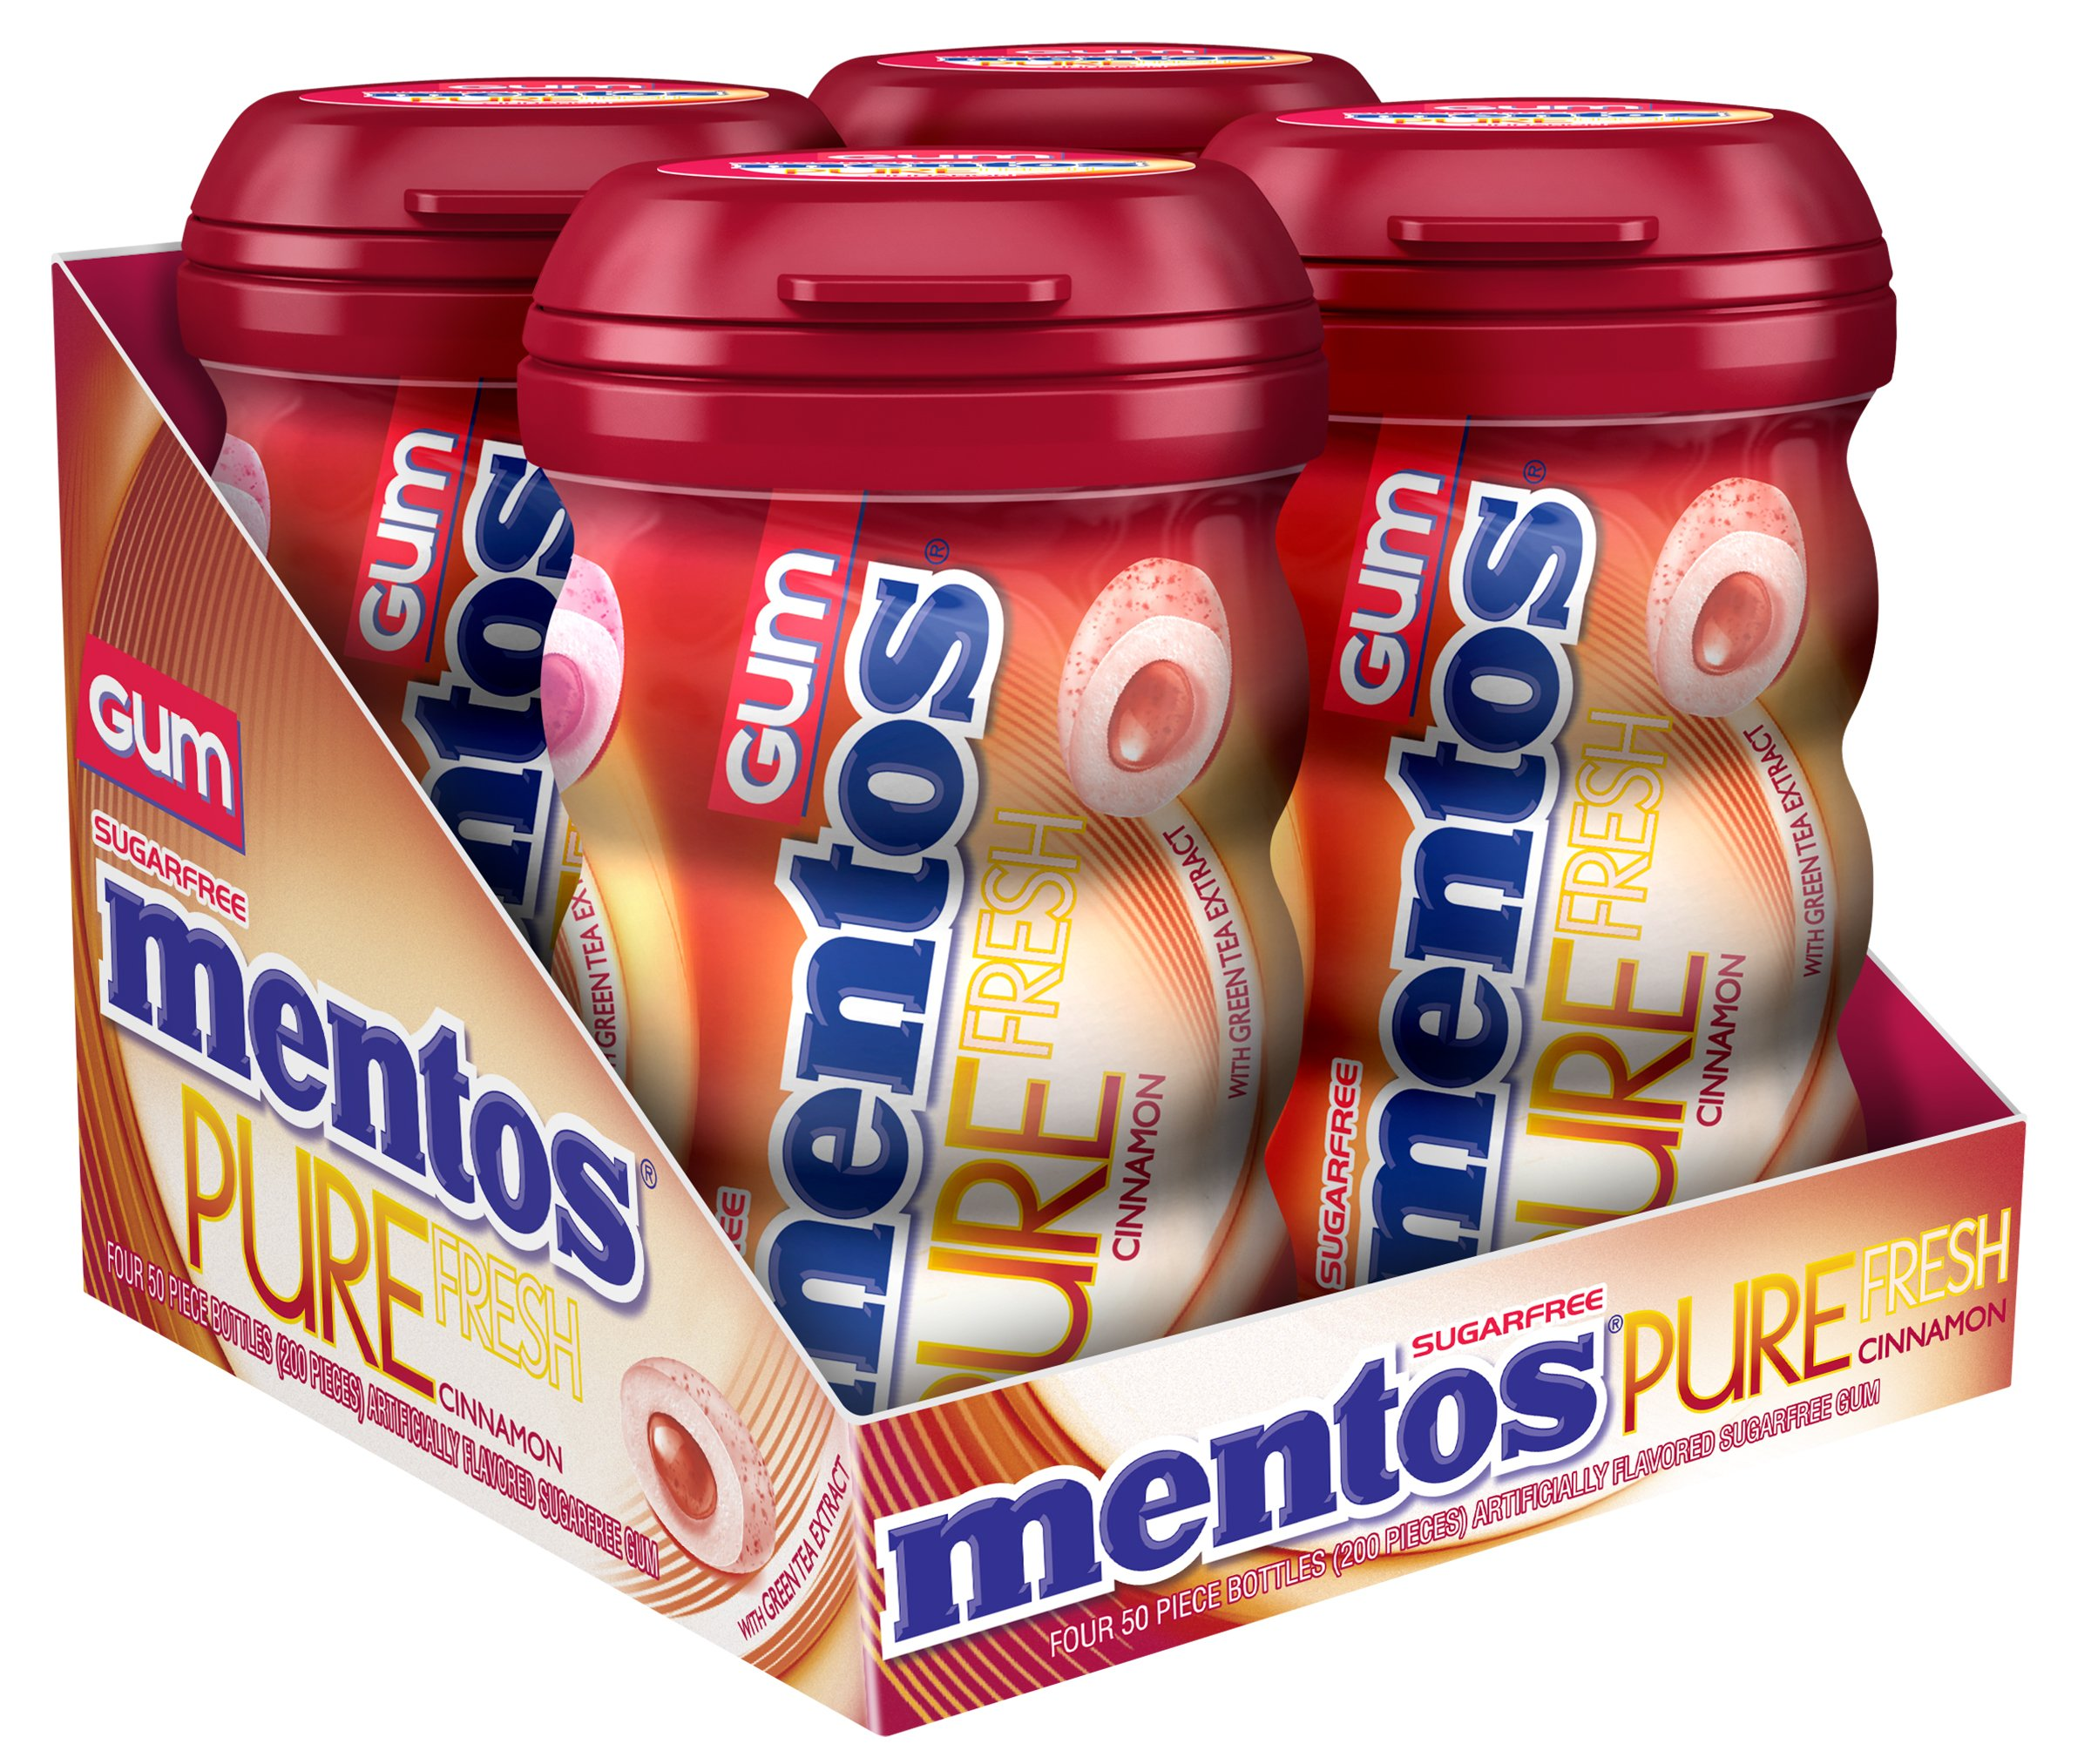 Mentos Pure Fresh Sugar-Free Chewing Gum with Xylitol, Cinnamon, 50 Piece Bottle (Pack of 4)